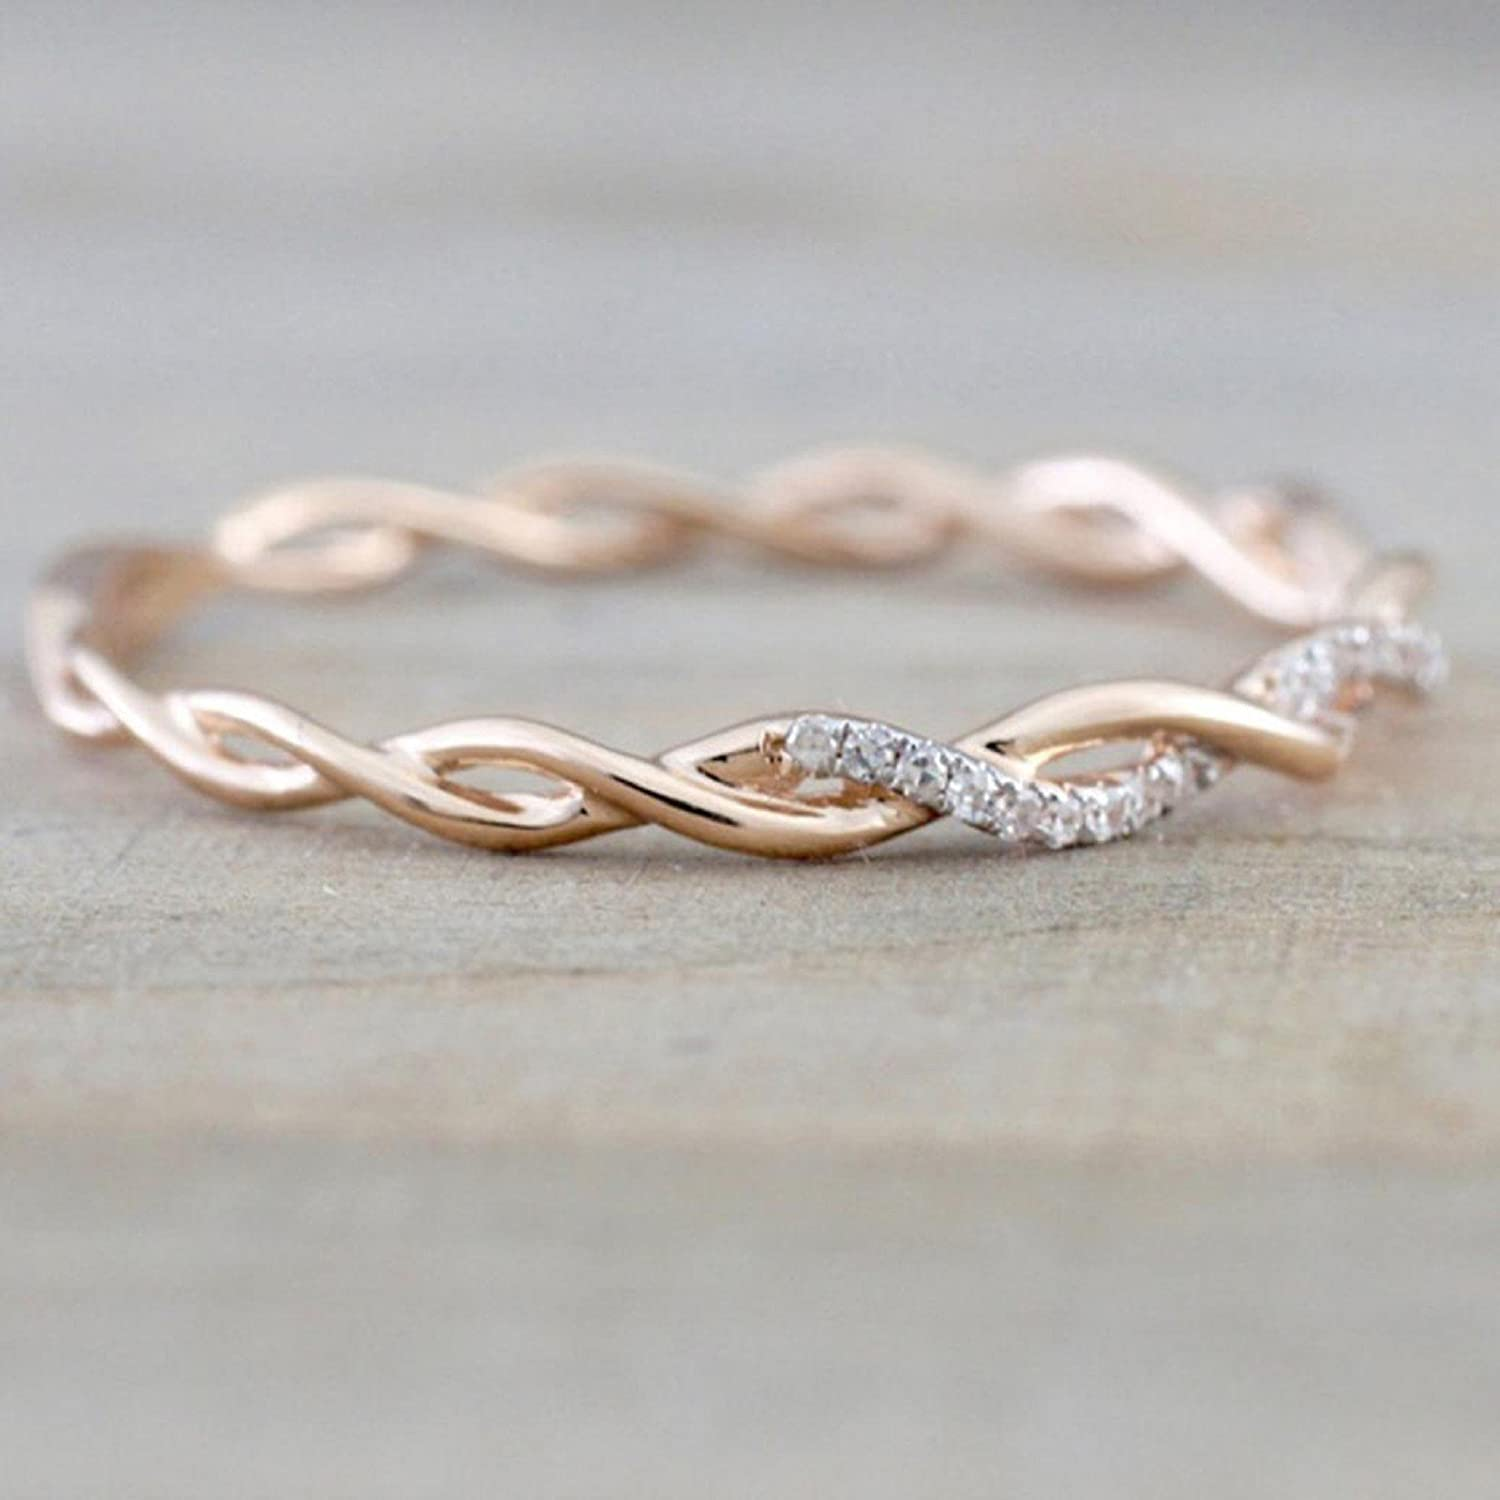 73455cb75a64 Amazon.com  Owill Twisted Shape Diamond Decor Ring Stacking Matching Band  Anniversary Ring Daily Casual Rings (7